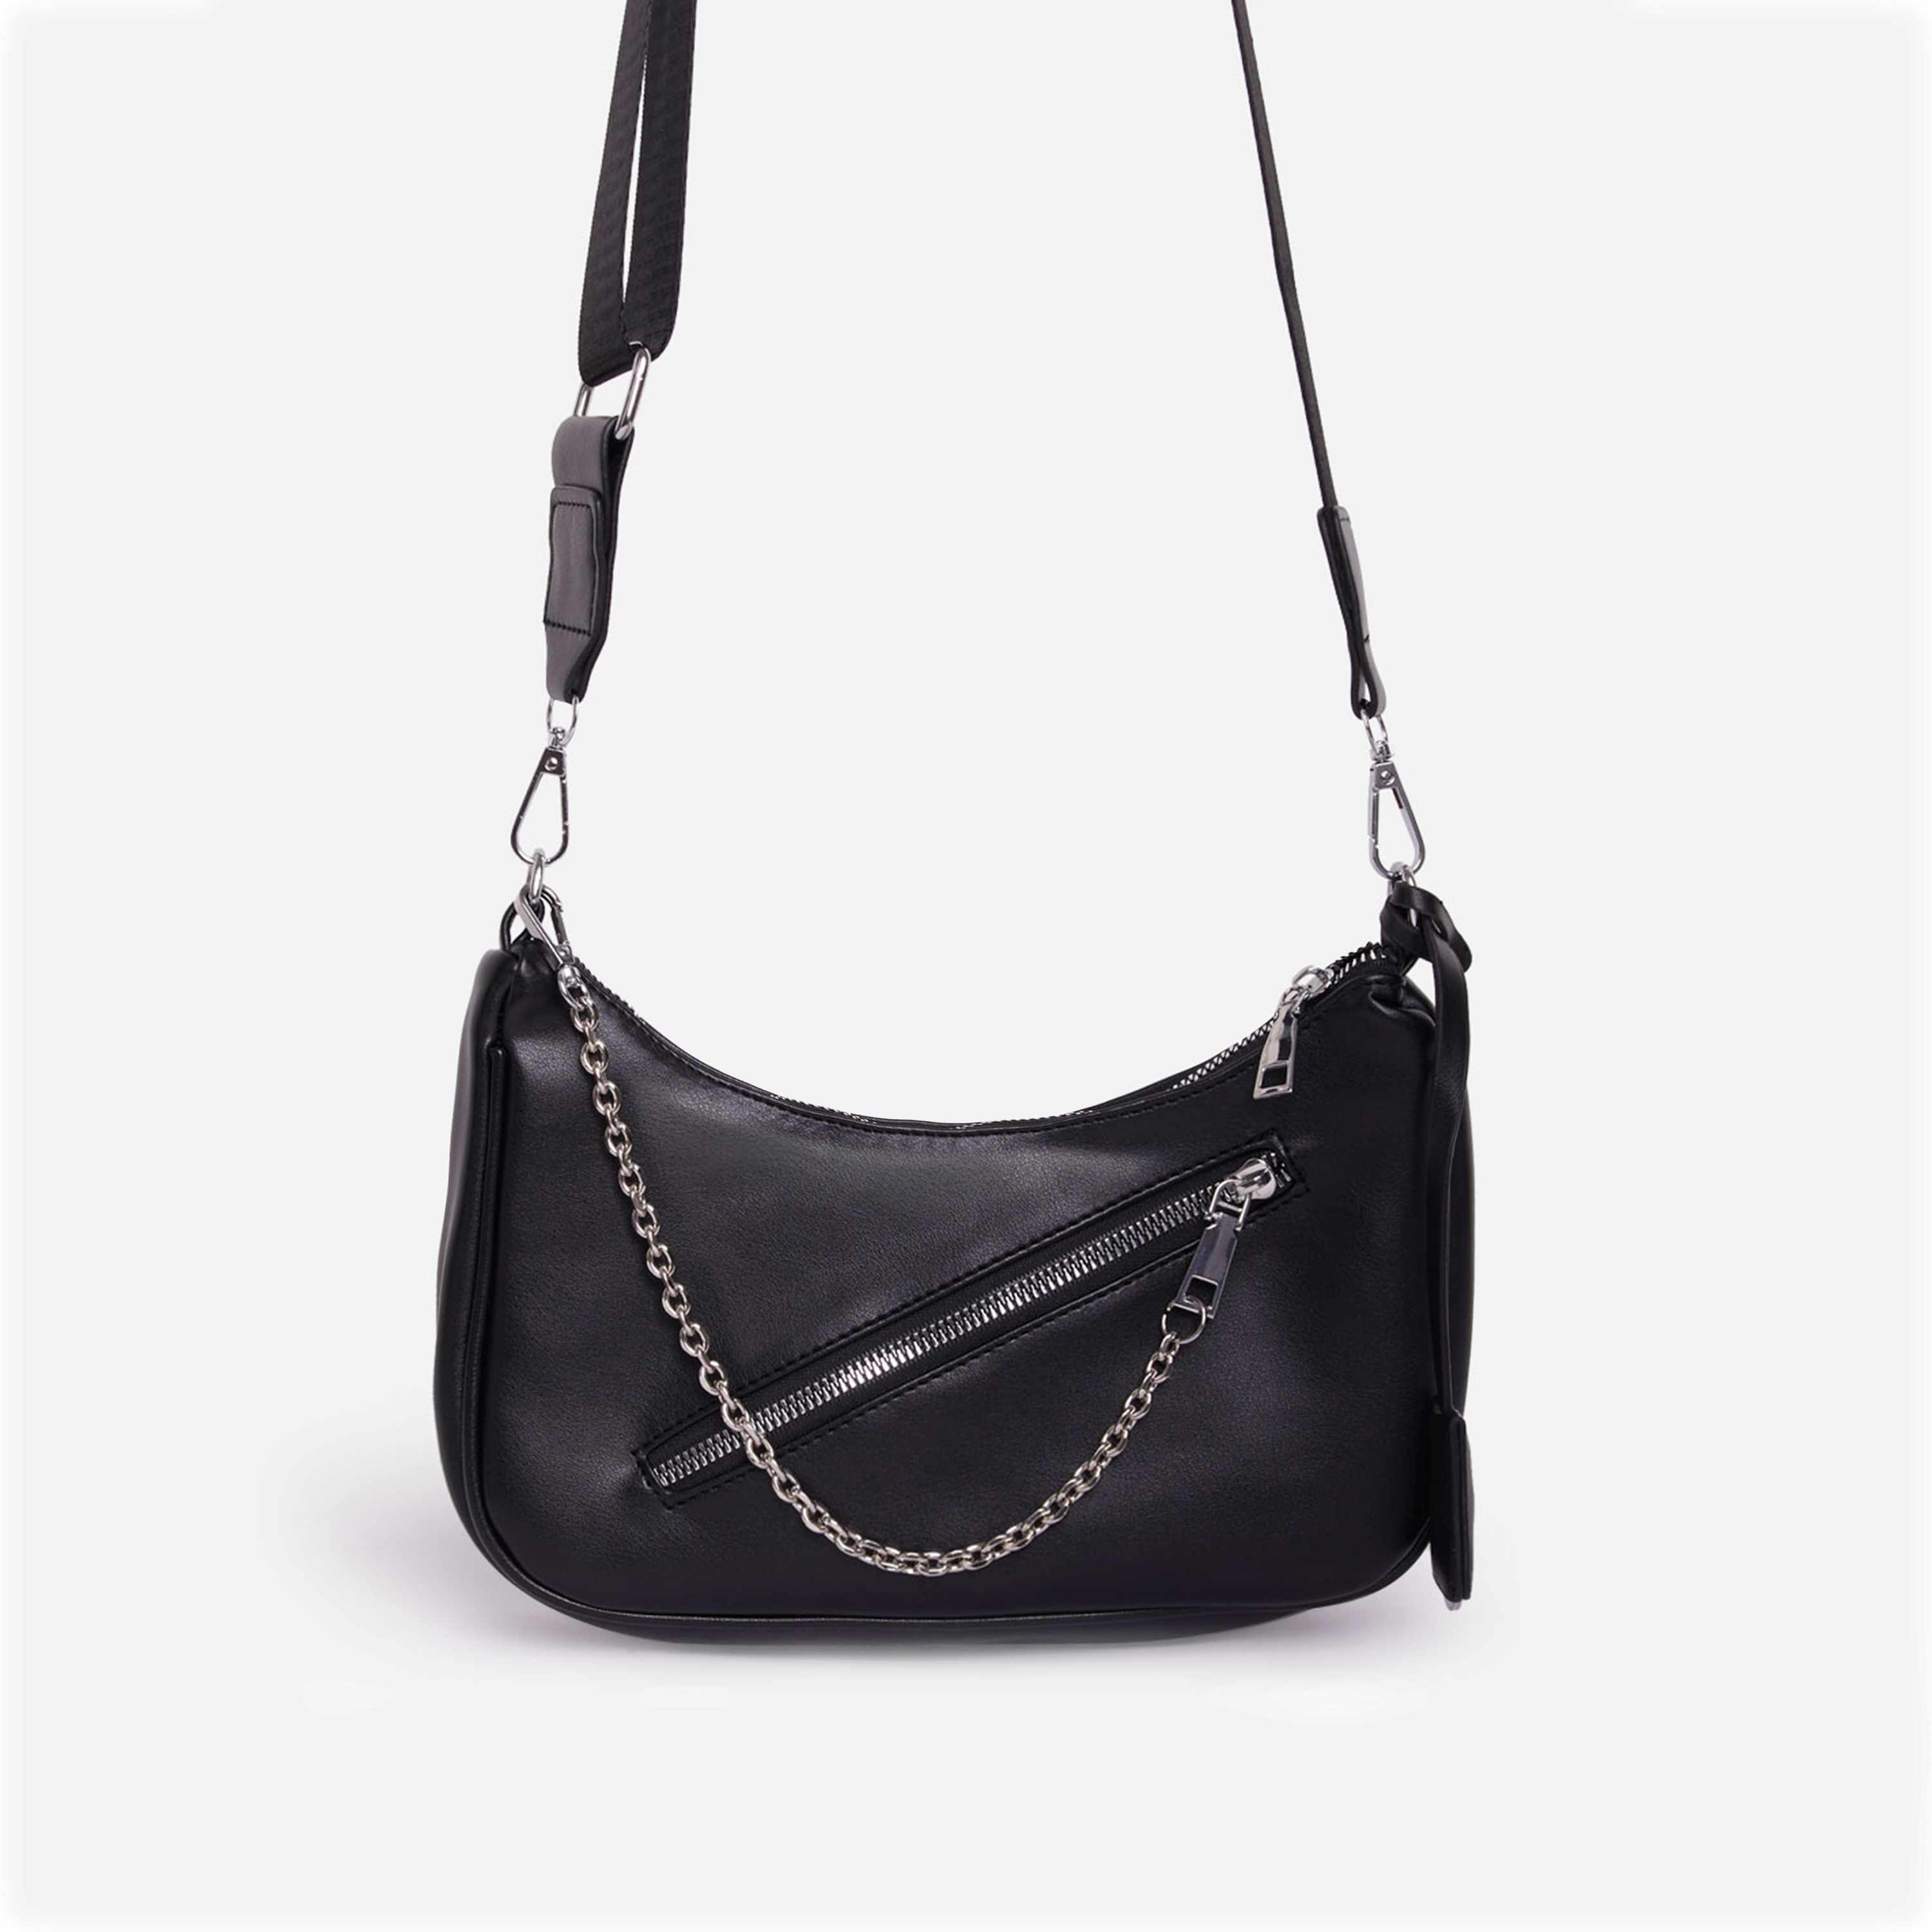 Major Pocket Detail Curved Cross Body Bag in Black Faux Leather